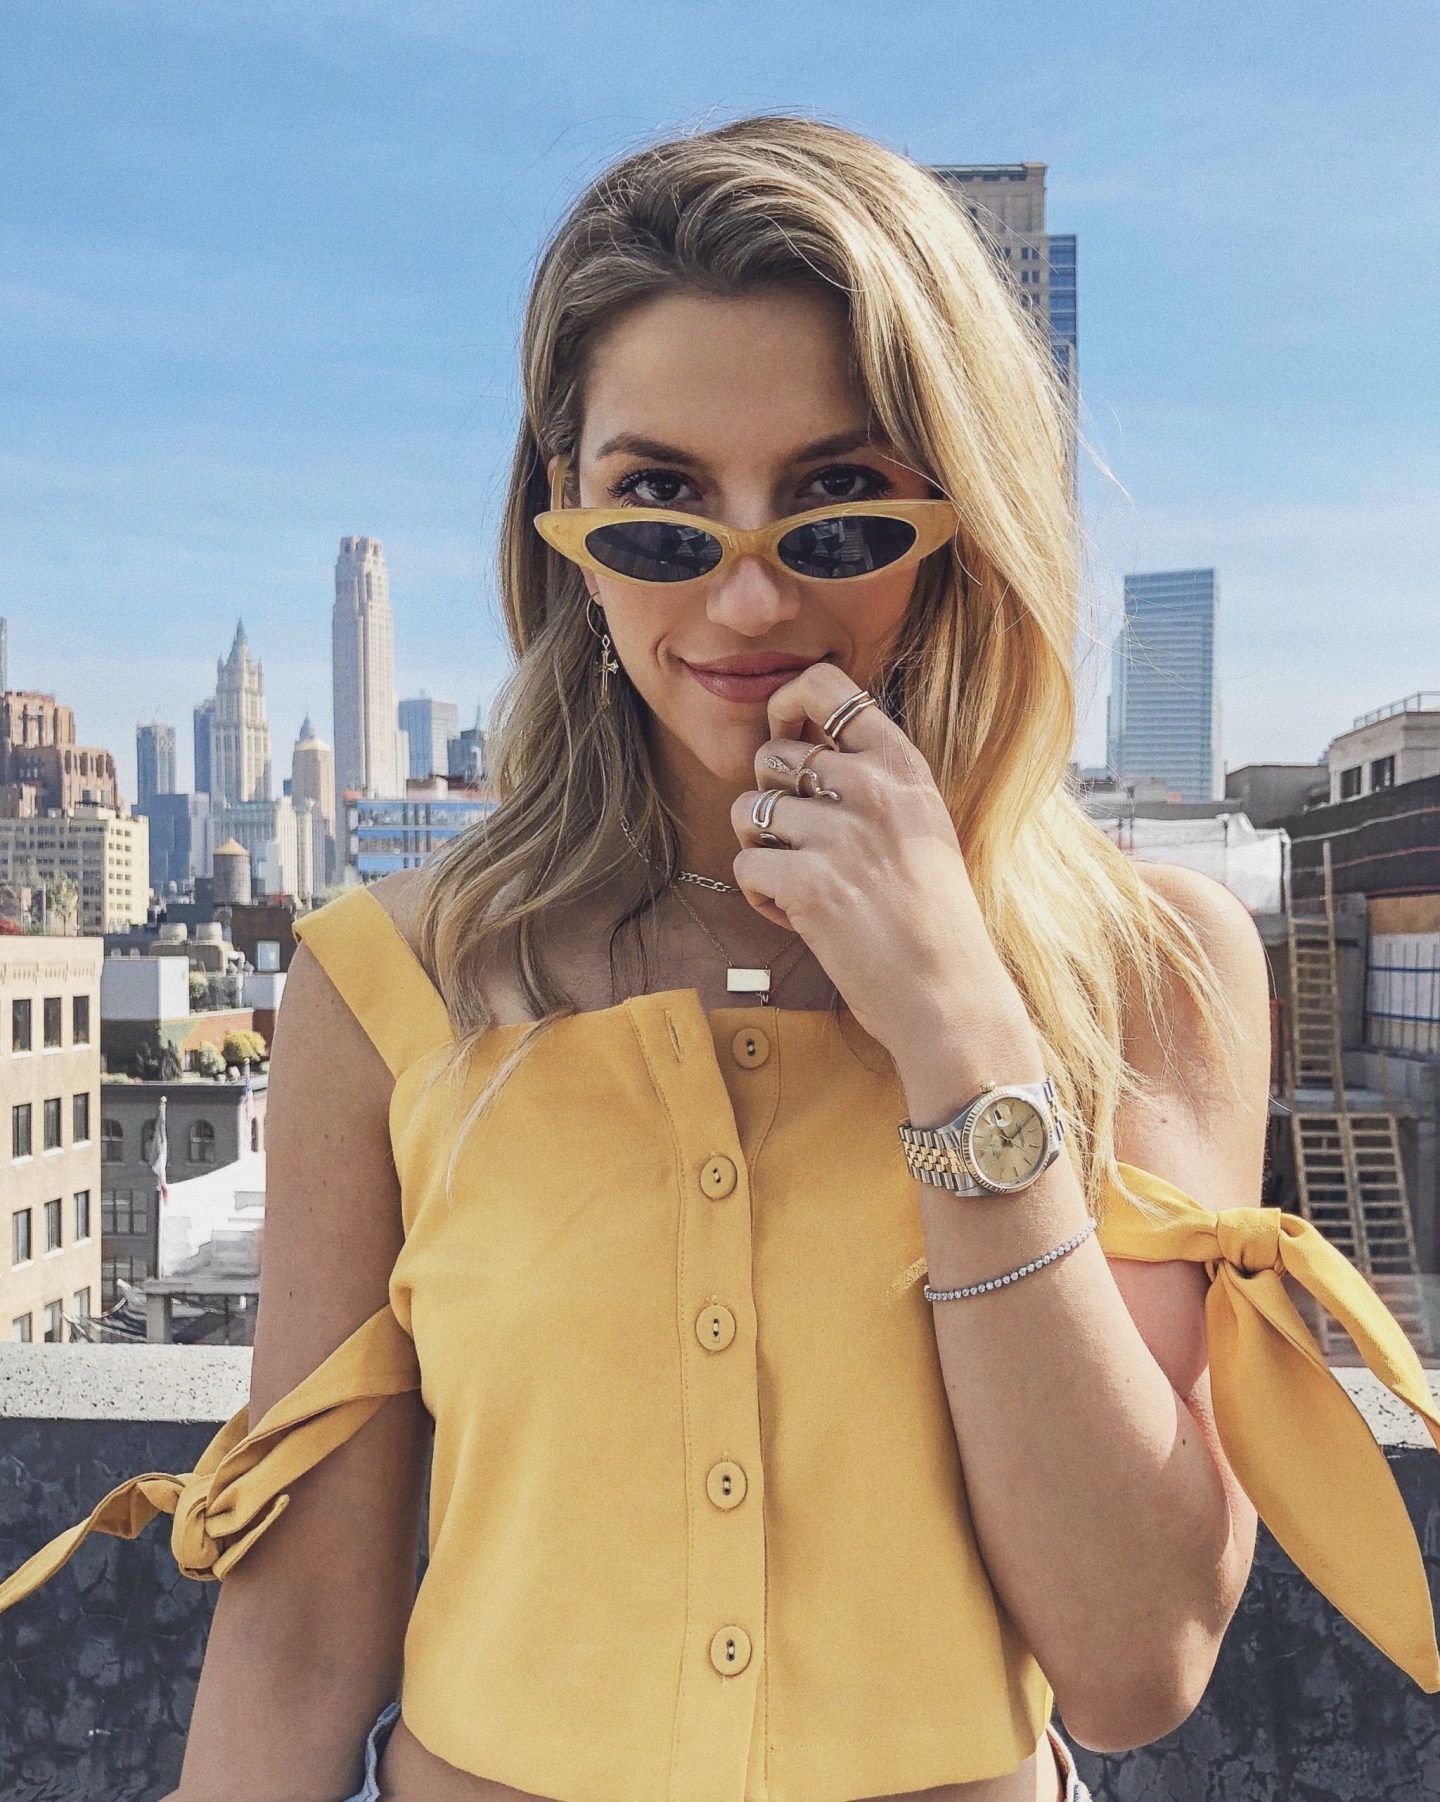 Cassandra DiMicco, Cass DiMicco, Dressed For Dreams, NYC, New York City, New York, Street Style NYC, Street Style 2018, NYC Street Style Street Style Outfits, 2018 Trends, NYC Fashion Blogger, moon river, yellow sunnies, yellow top, Shashi jewelry, layered necklaces